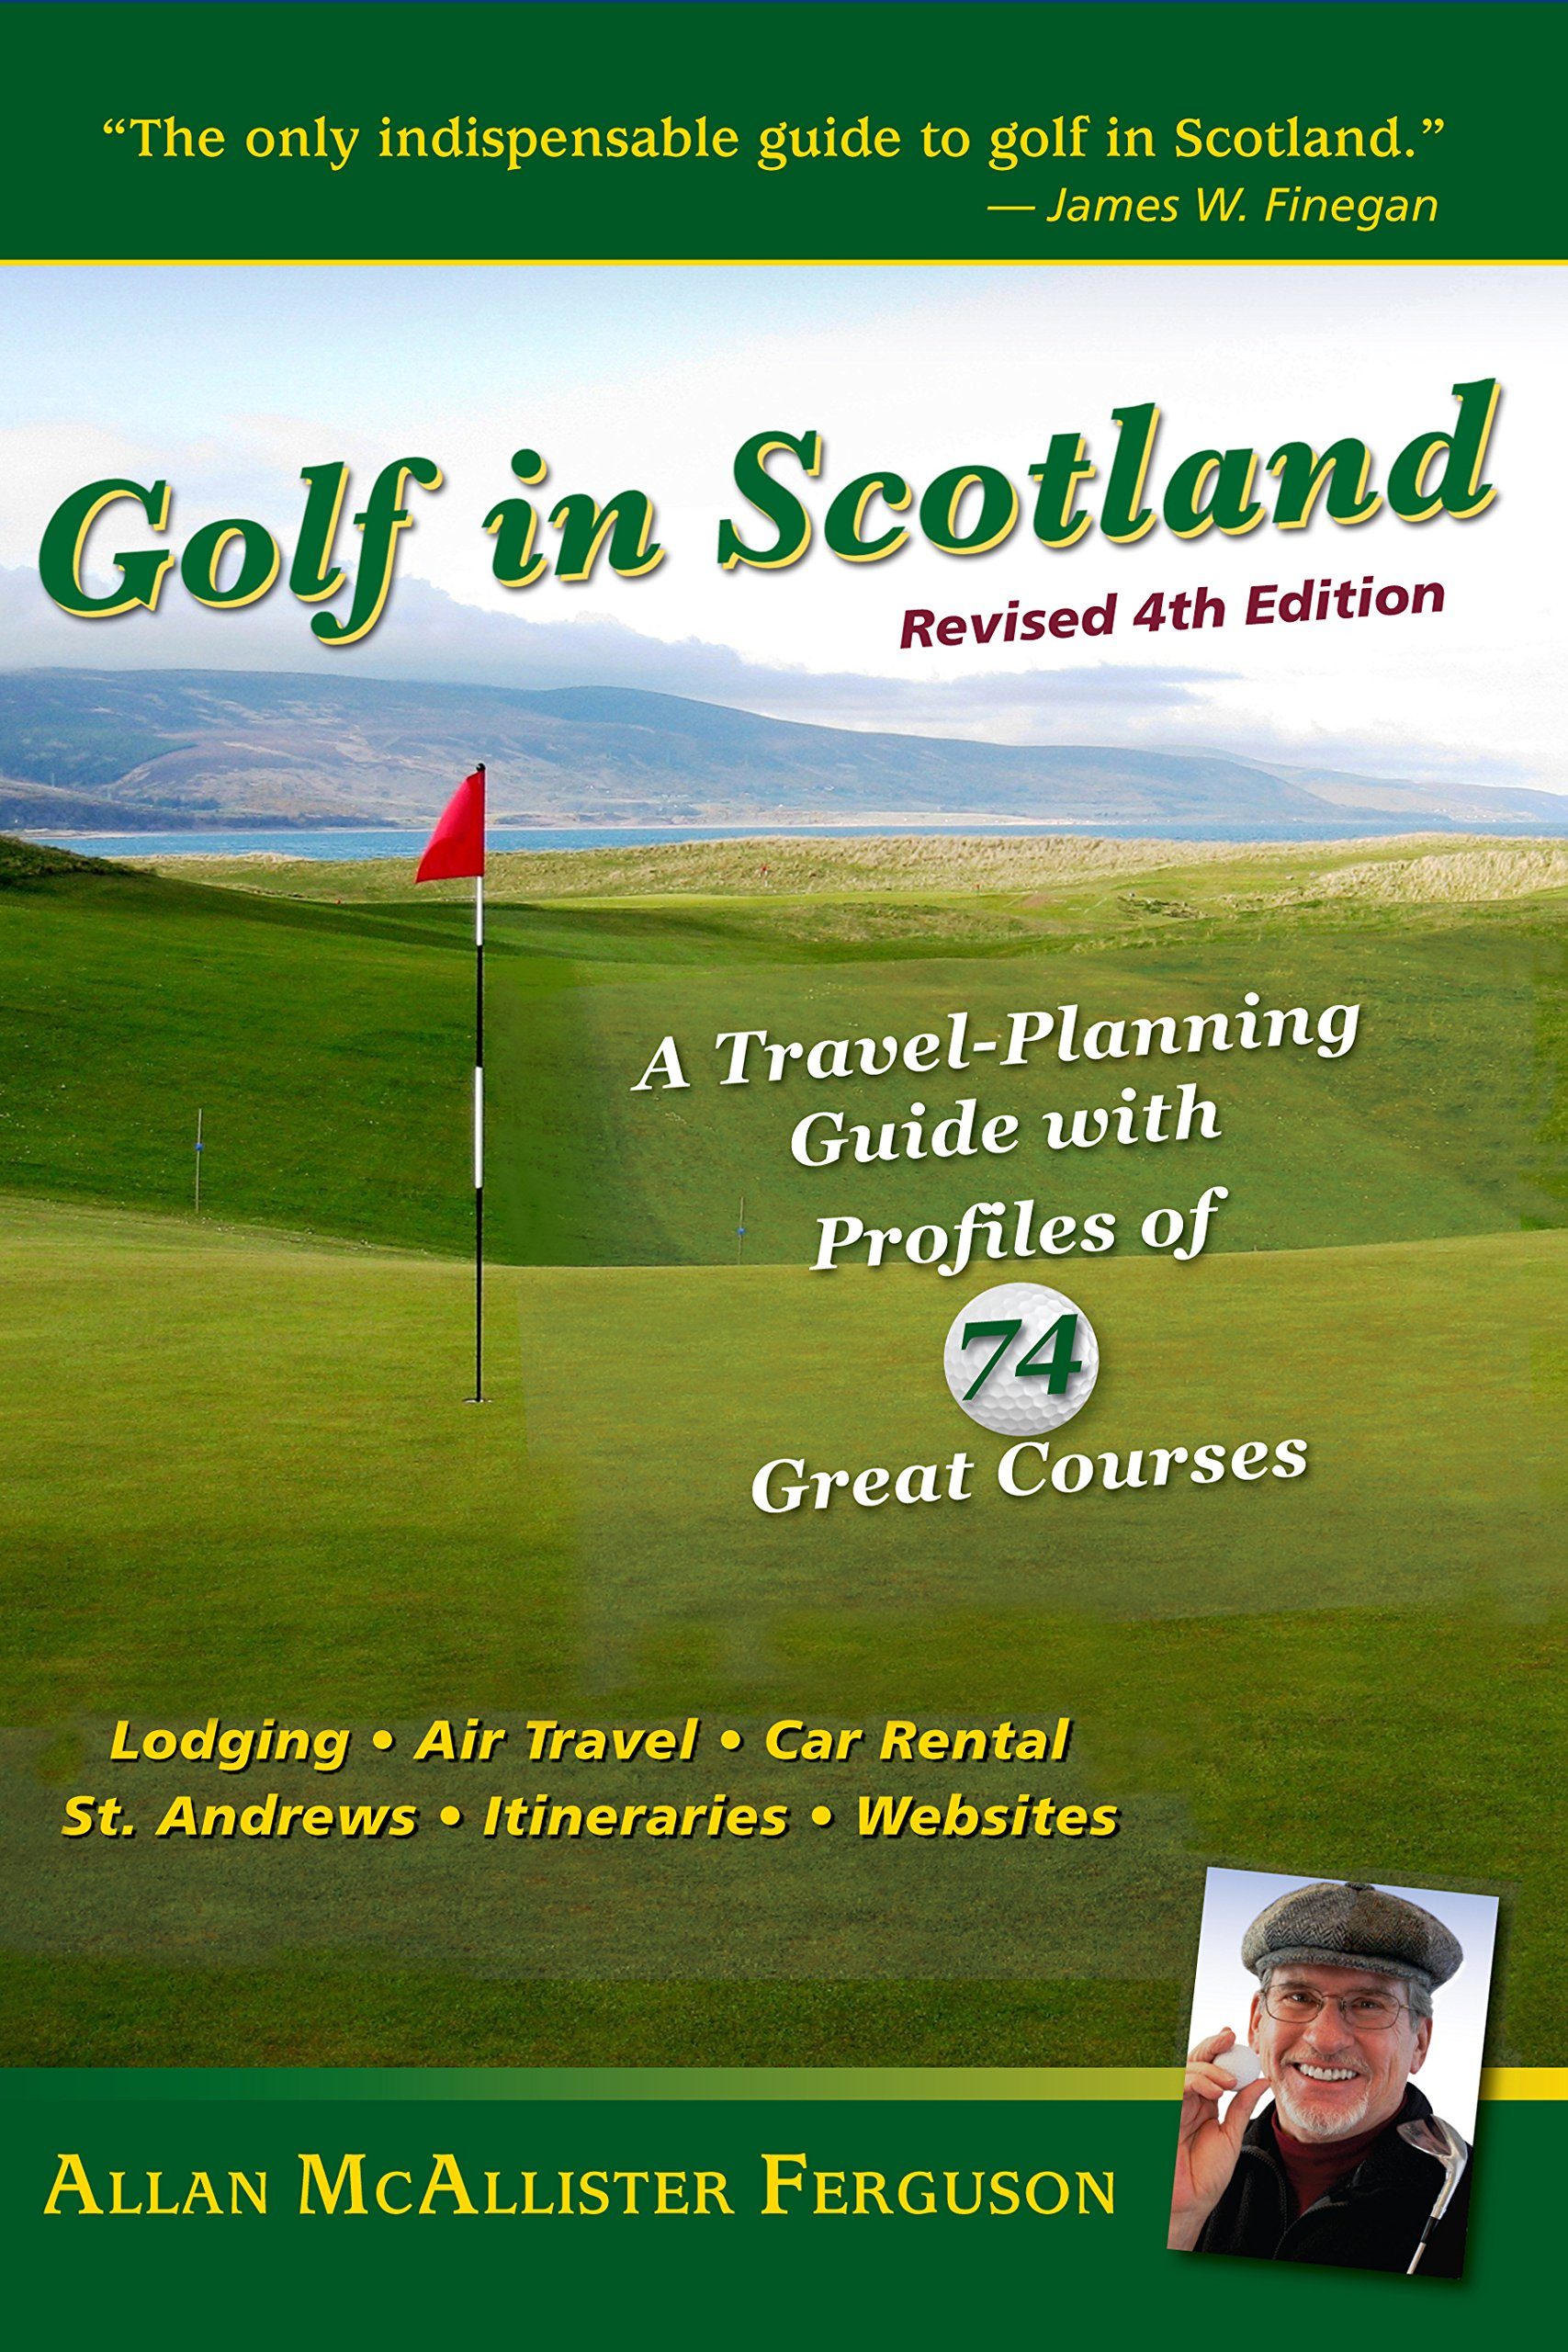 Image OfGolf In Scotland: A Travel-Planning Guide With Profiles Of 74 Great Courses